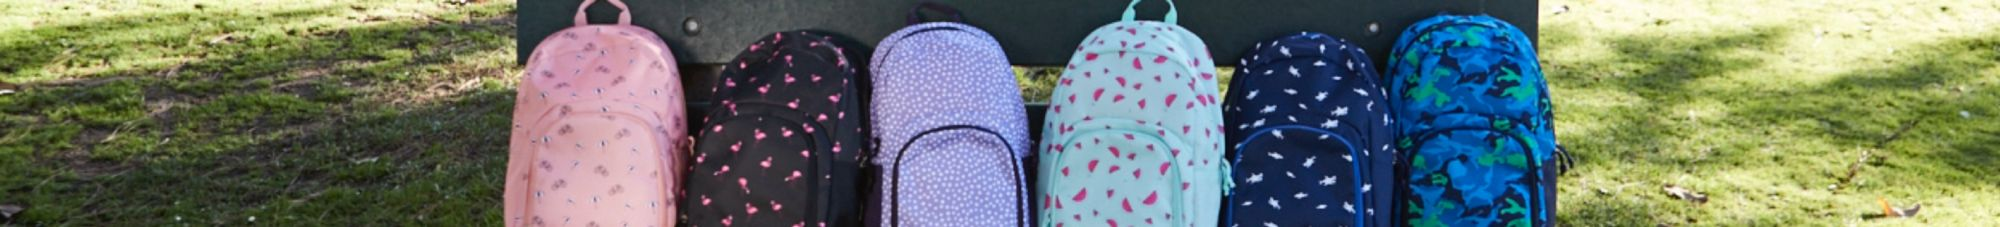 NEW DRIVERS: BACKPACK FINDER